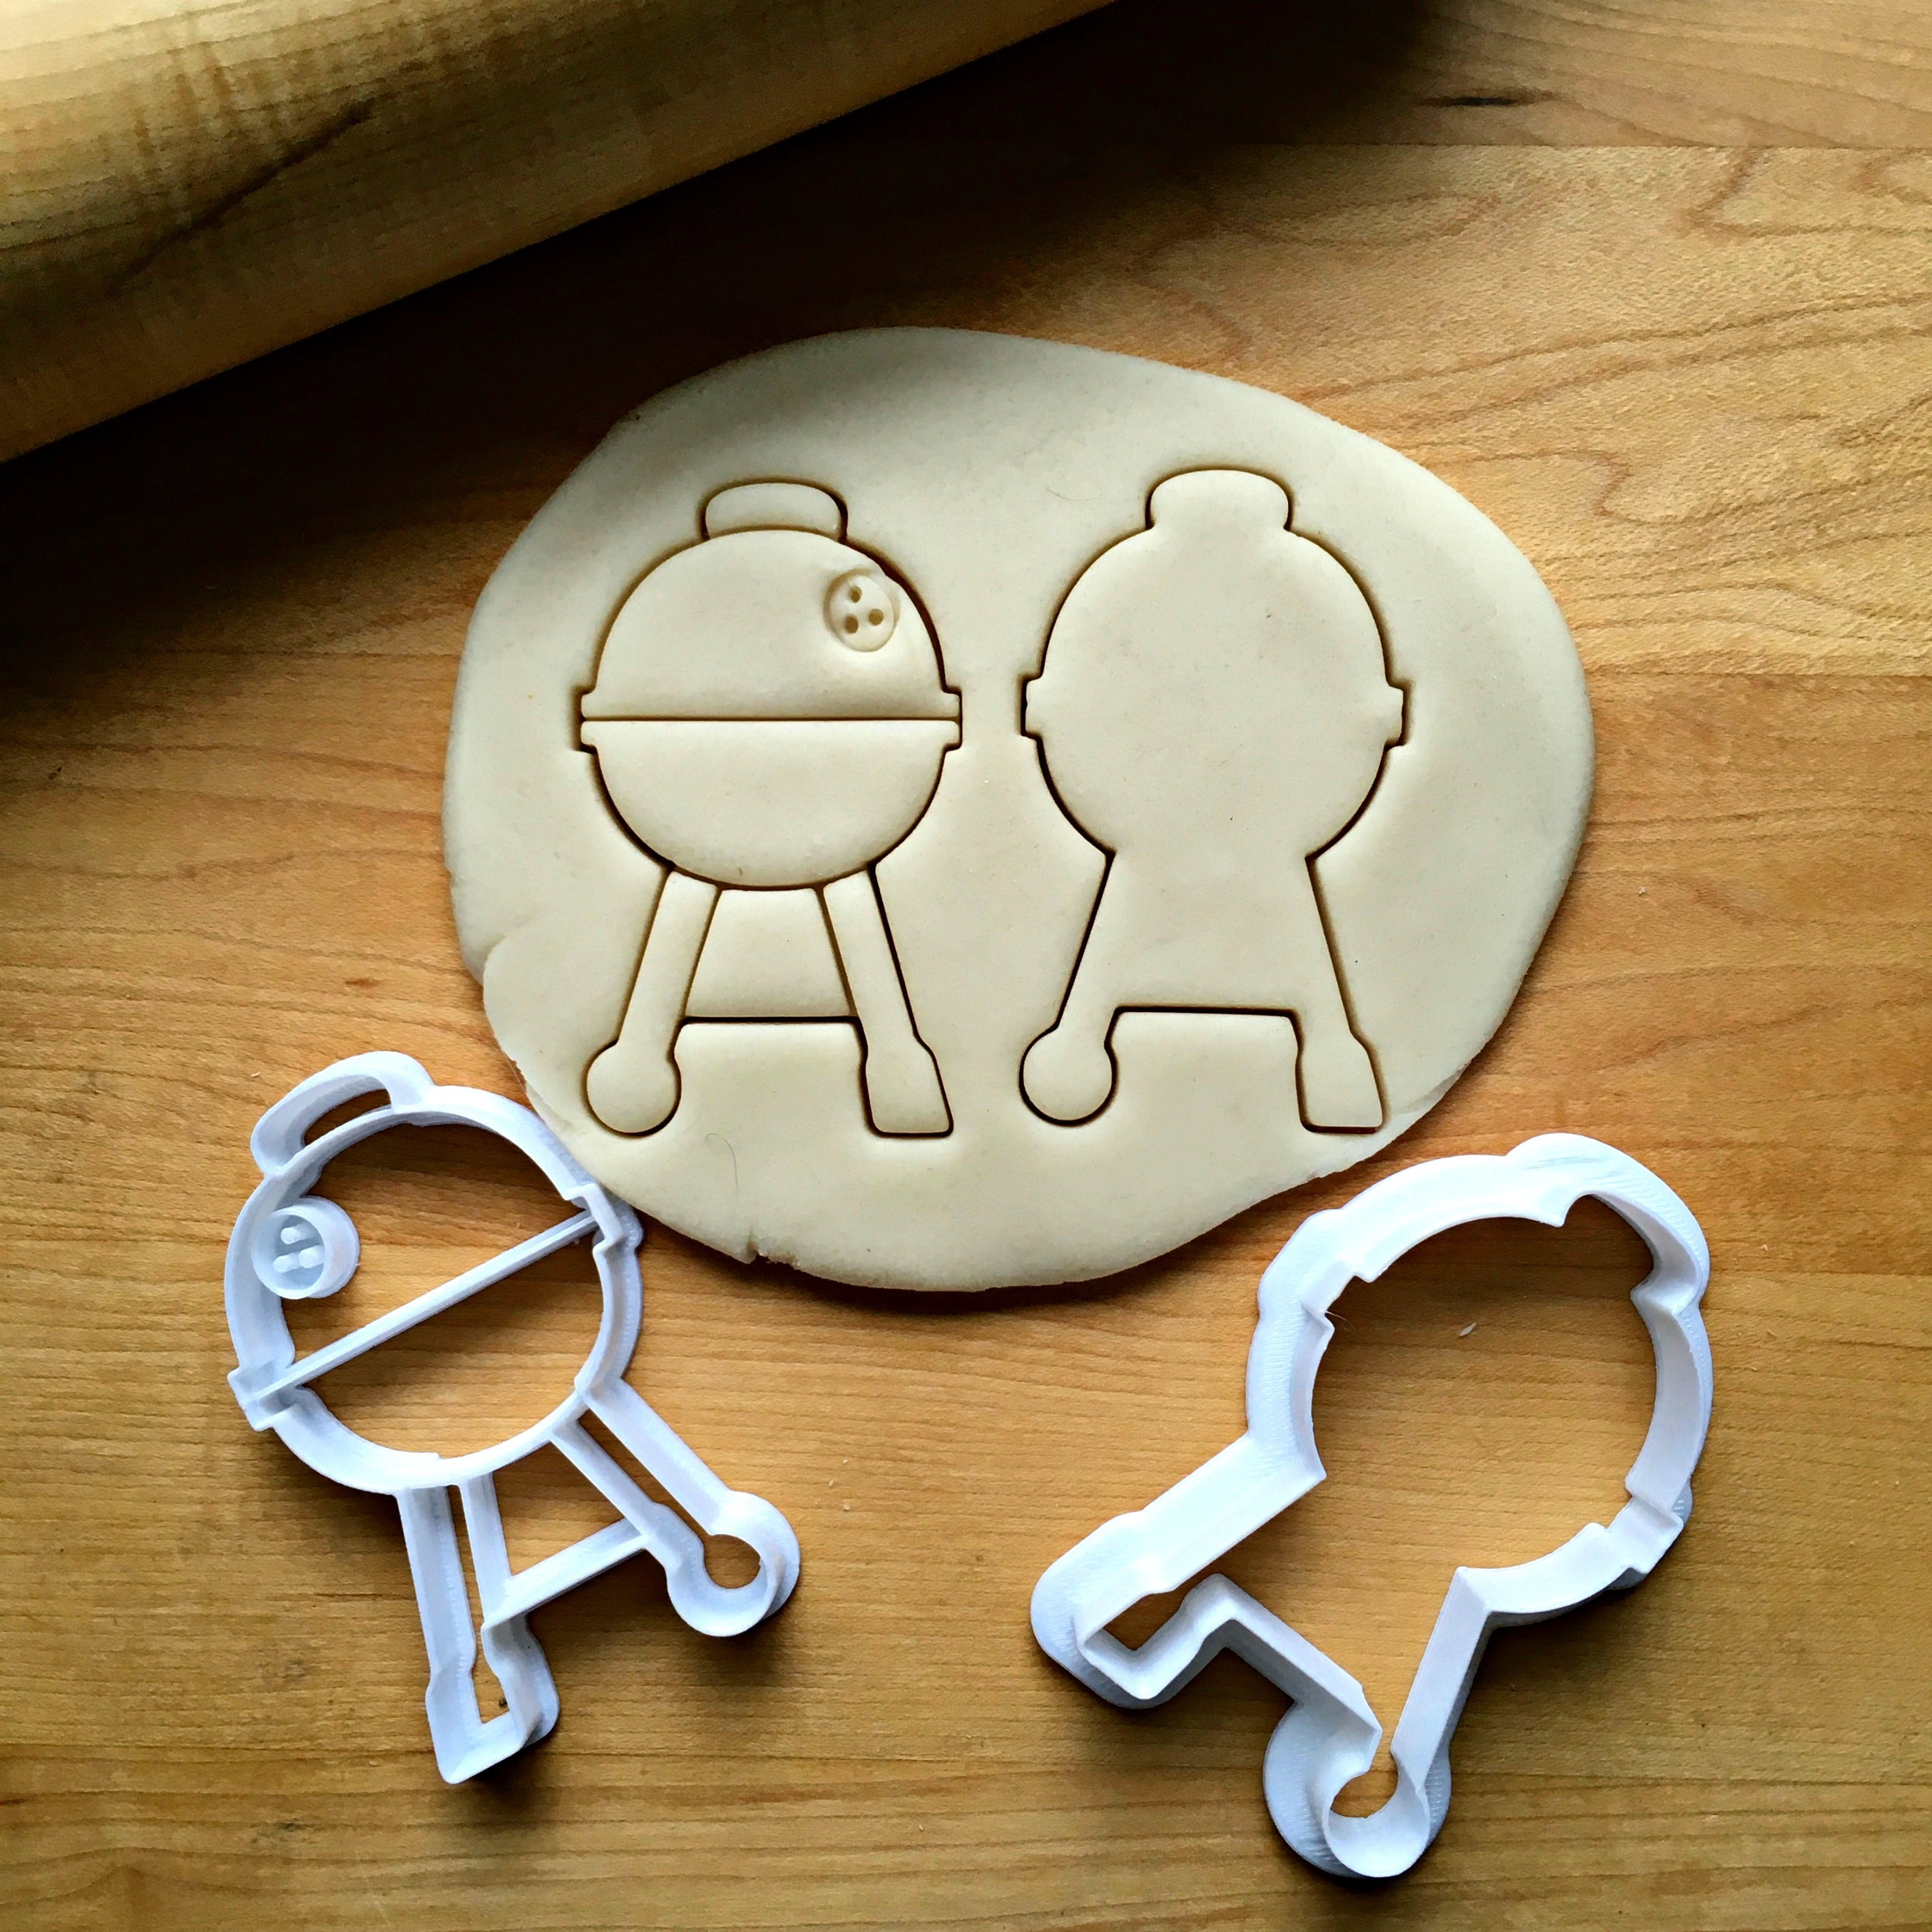 Set of 2 Grill Cookie Cutters/Dishwasher Safe